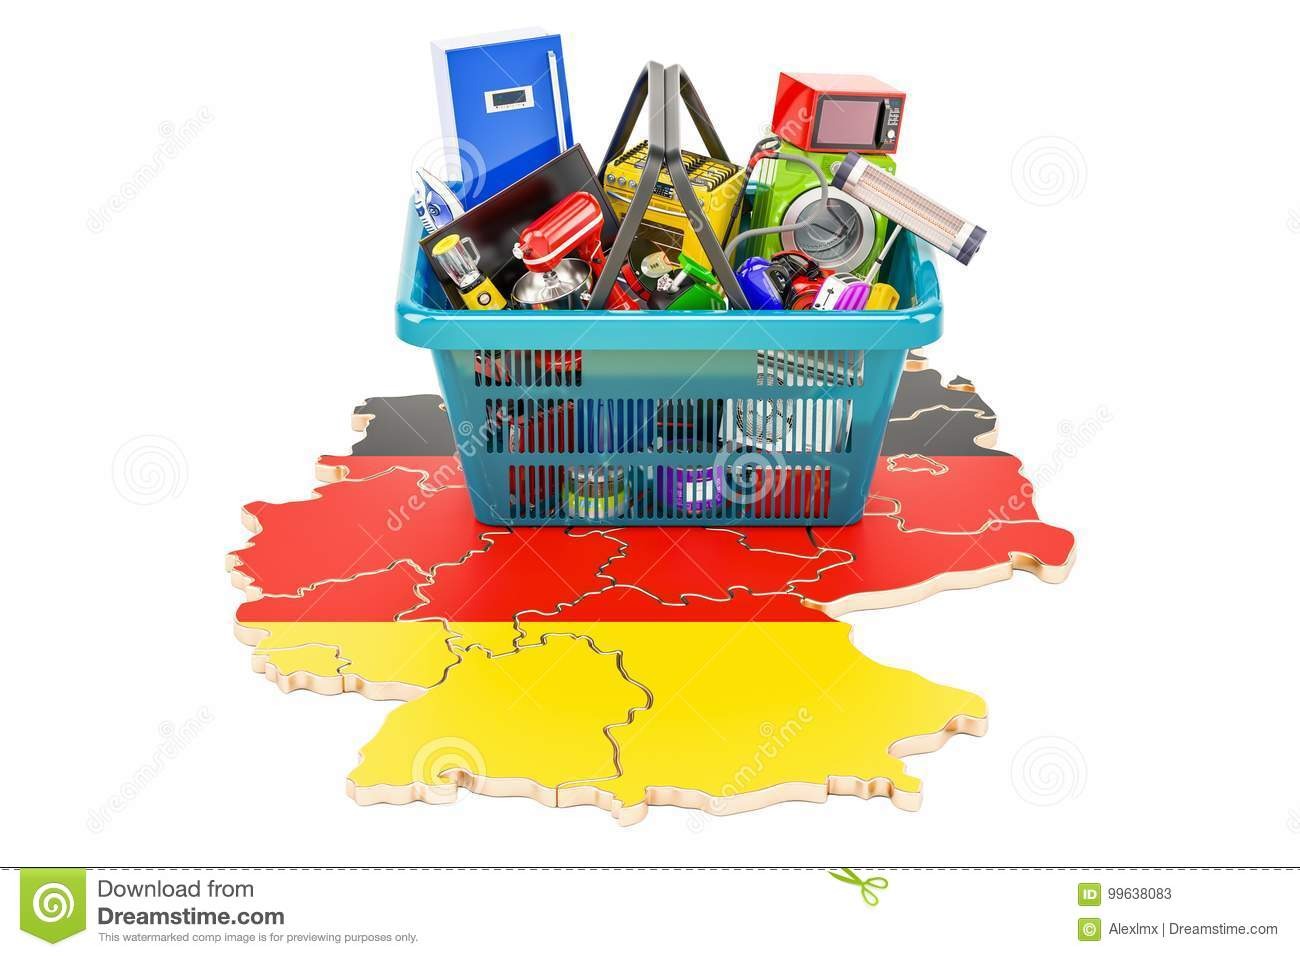 Map Of Germany For Sale.Map Of Germany With Shopping Basket Full Of Home And Kitchen App